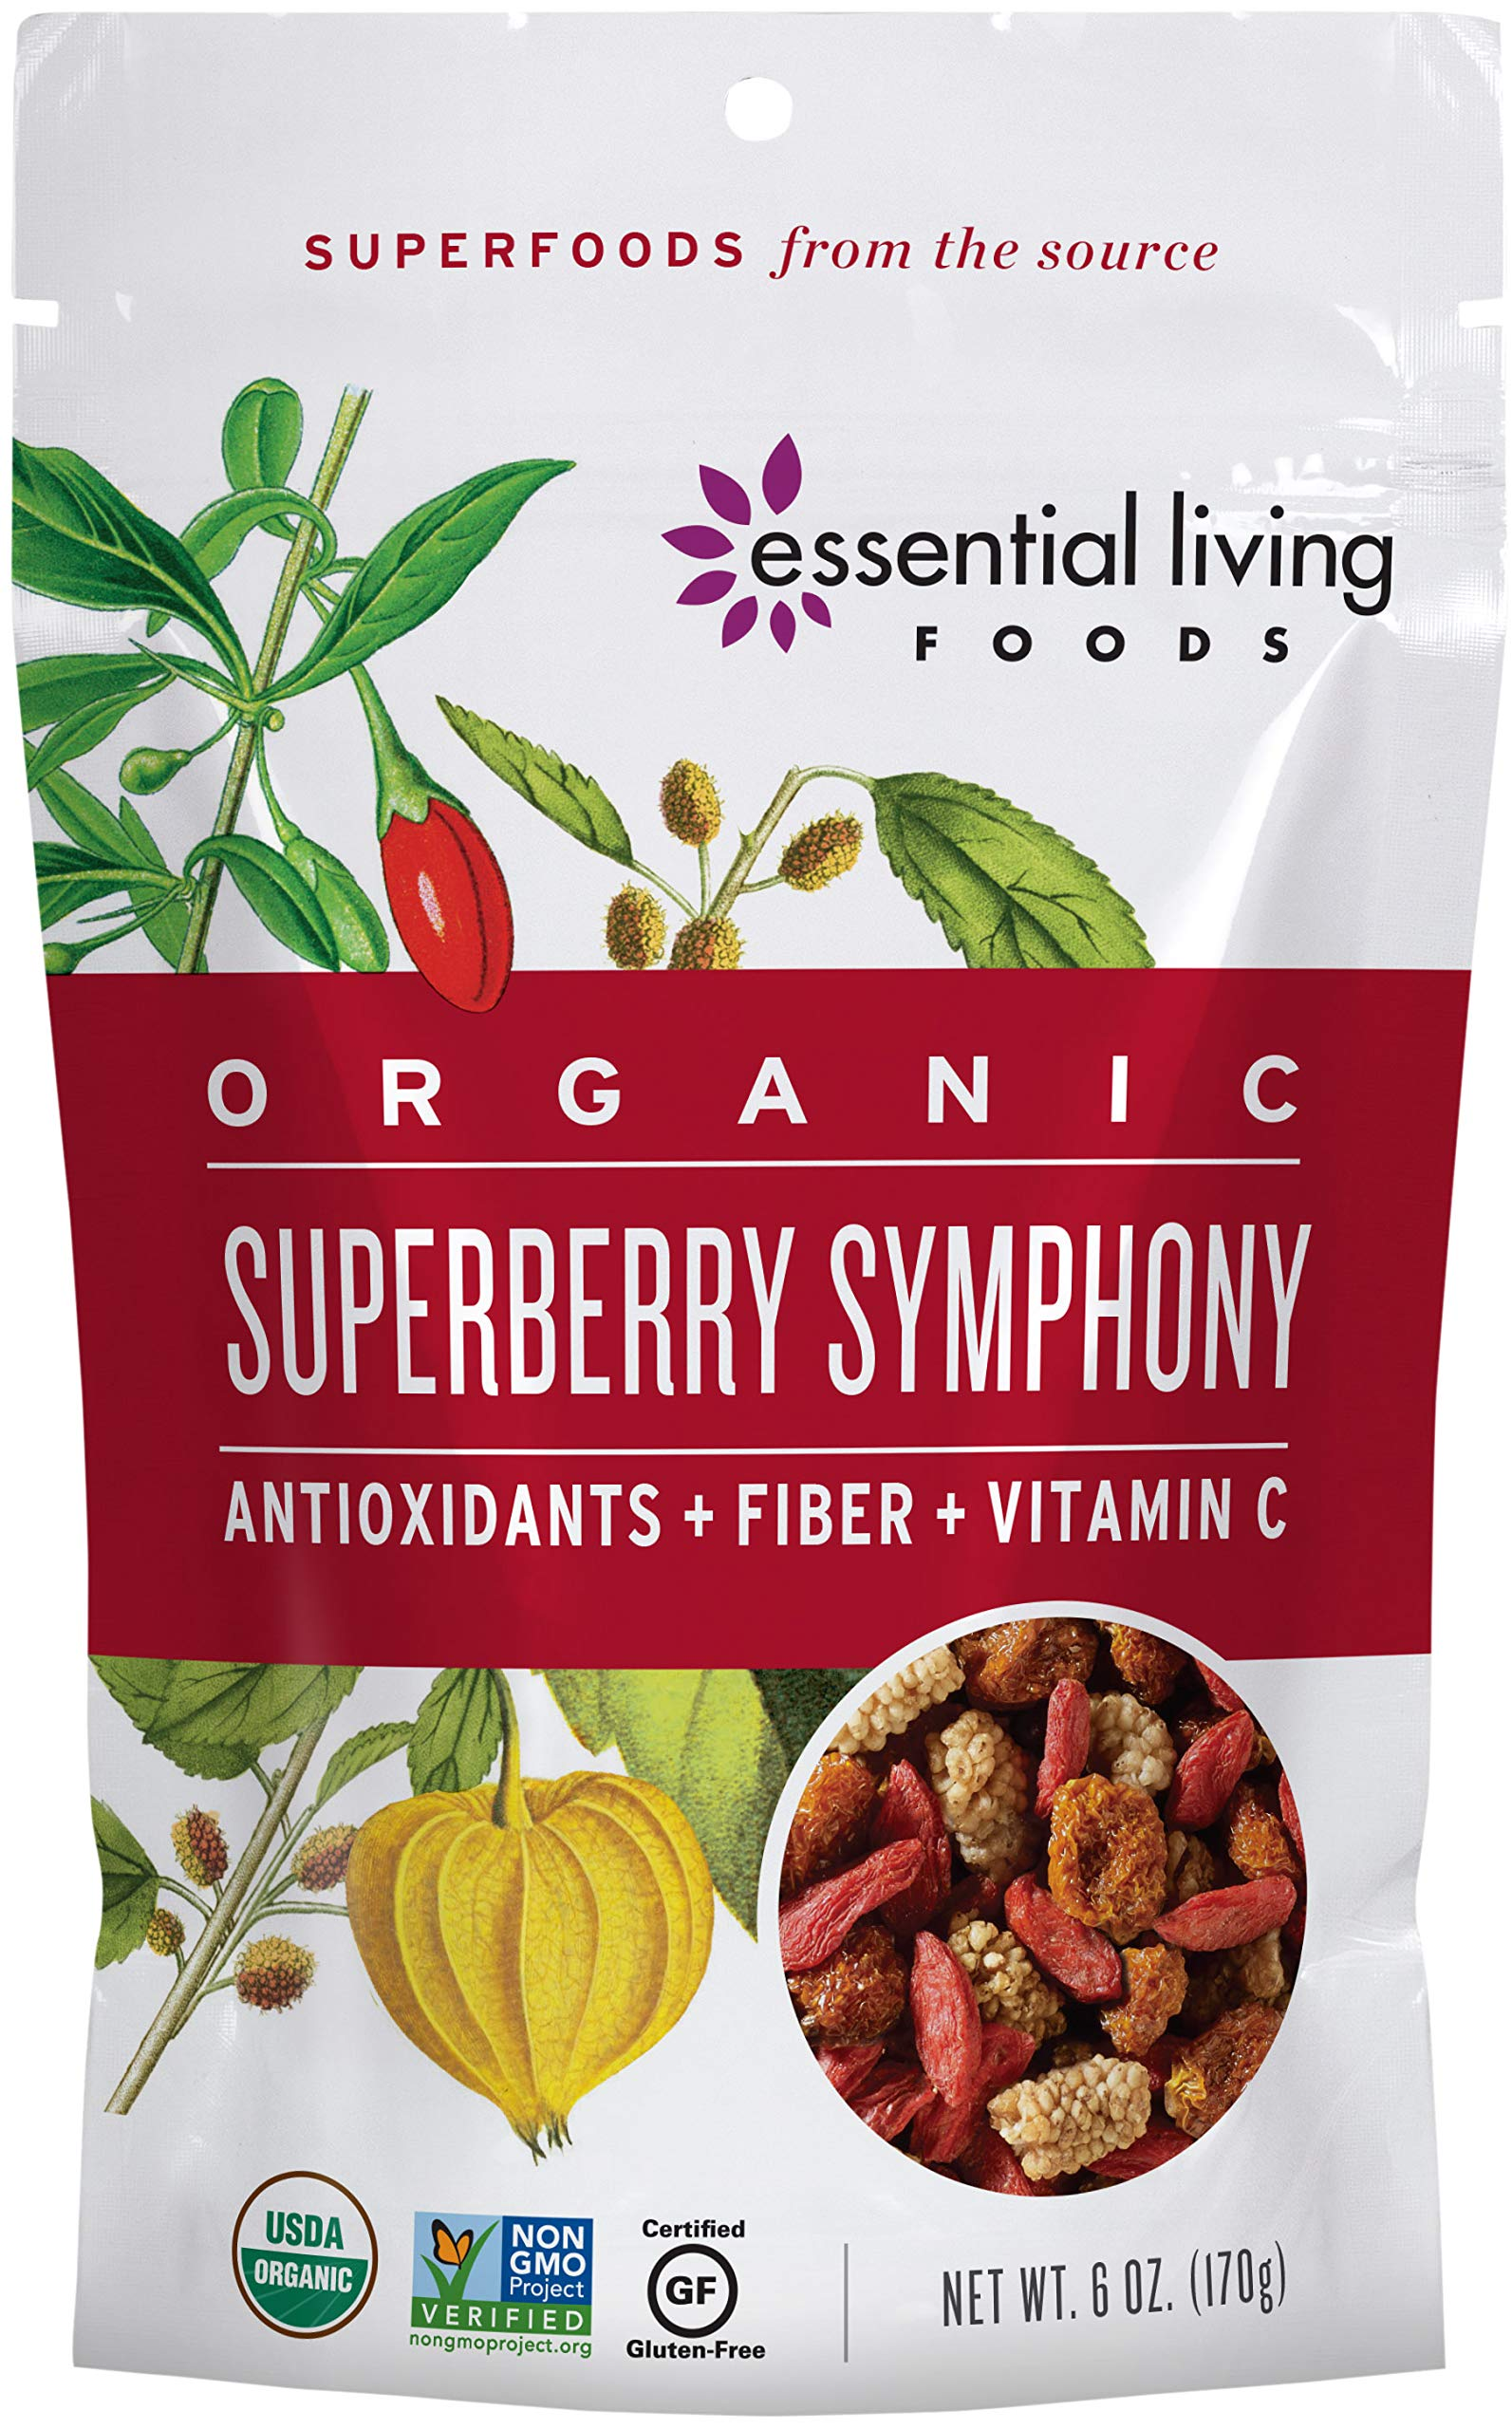 Essential Living Foods Organic Super Berry Symphony Trail Mix, Mulberries, Goji Berries, Goldenberries, Maqui Berries, Vegan, Superfood, Non-GMO, Gluten Free, Hiking Fuel, 6 Ounce Resealable Bag